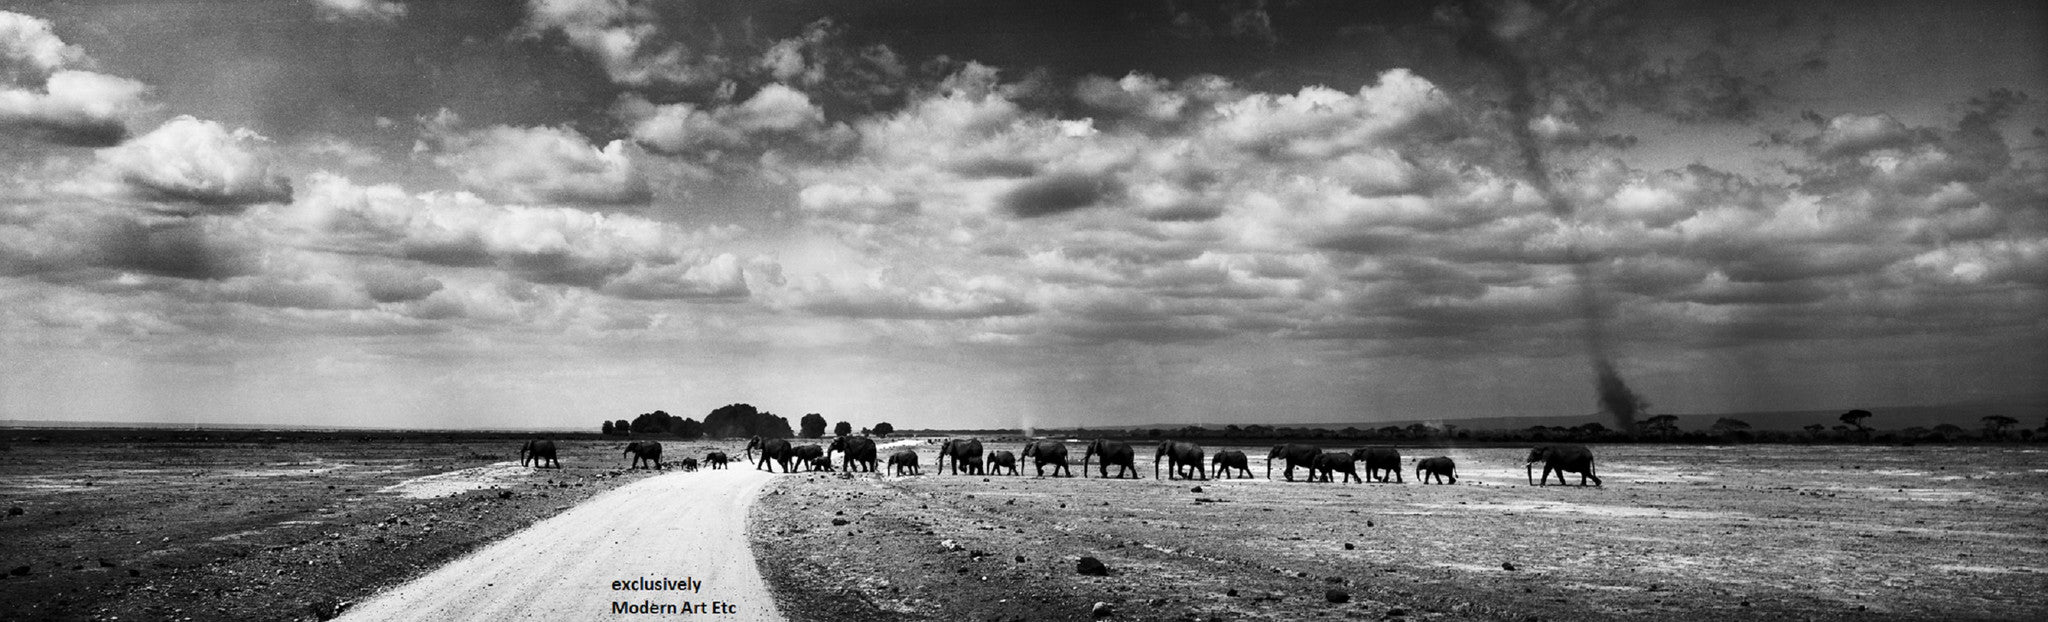 Black & White Wildlife - Elephants - Kenya - William Chua